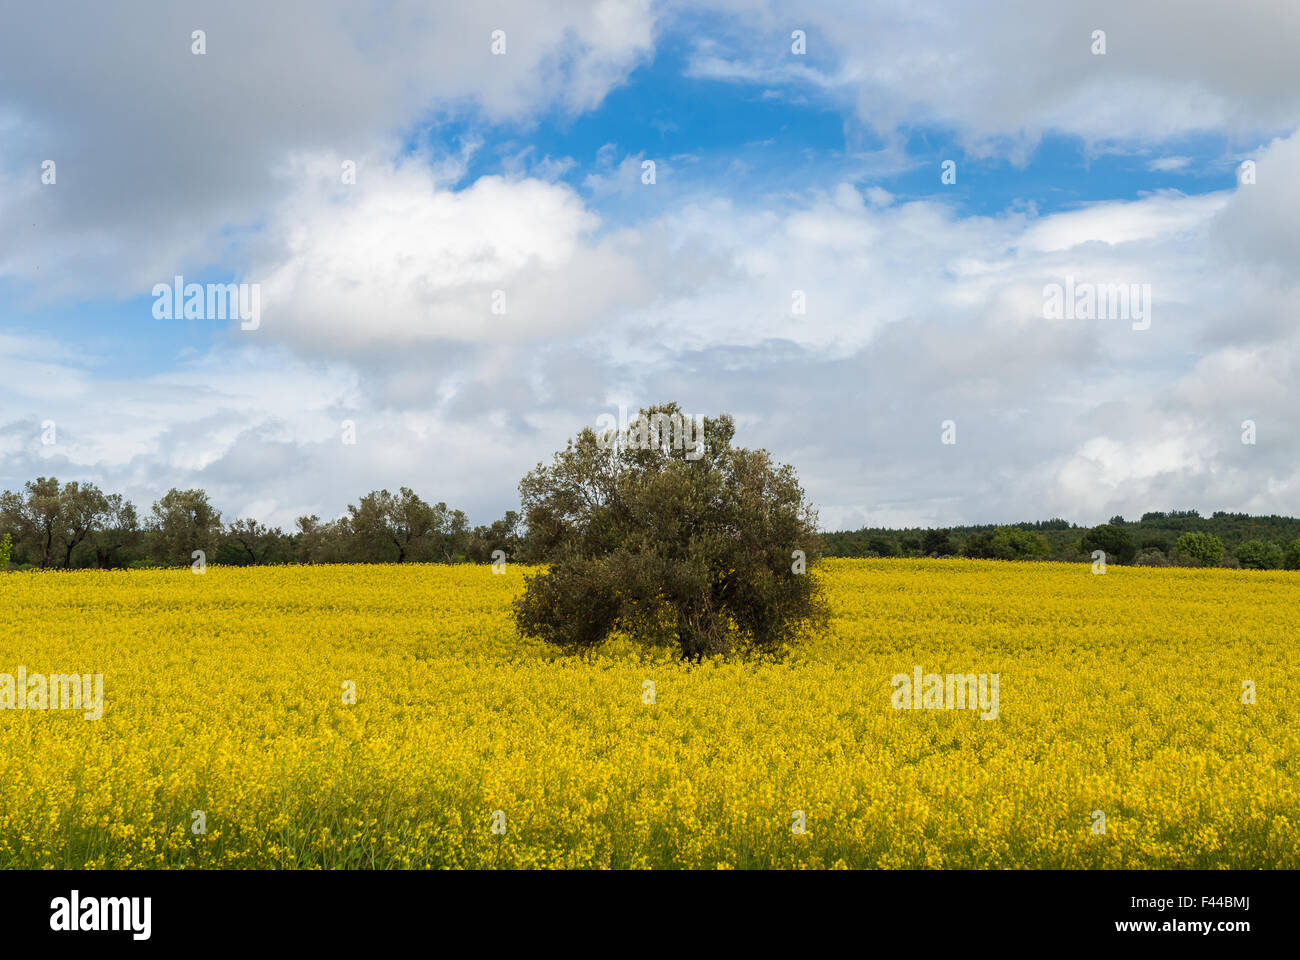 Lone tree in a field with yellow flowers on the gallipoli peninsula lone tree in a field with yellow flowers on the gallipoli peninsula turkey mightylinksfo